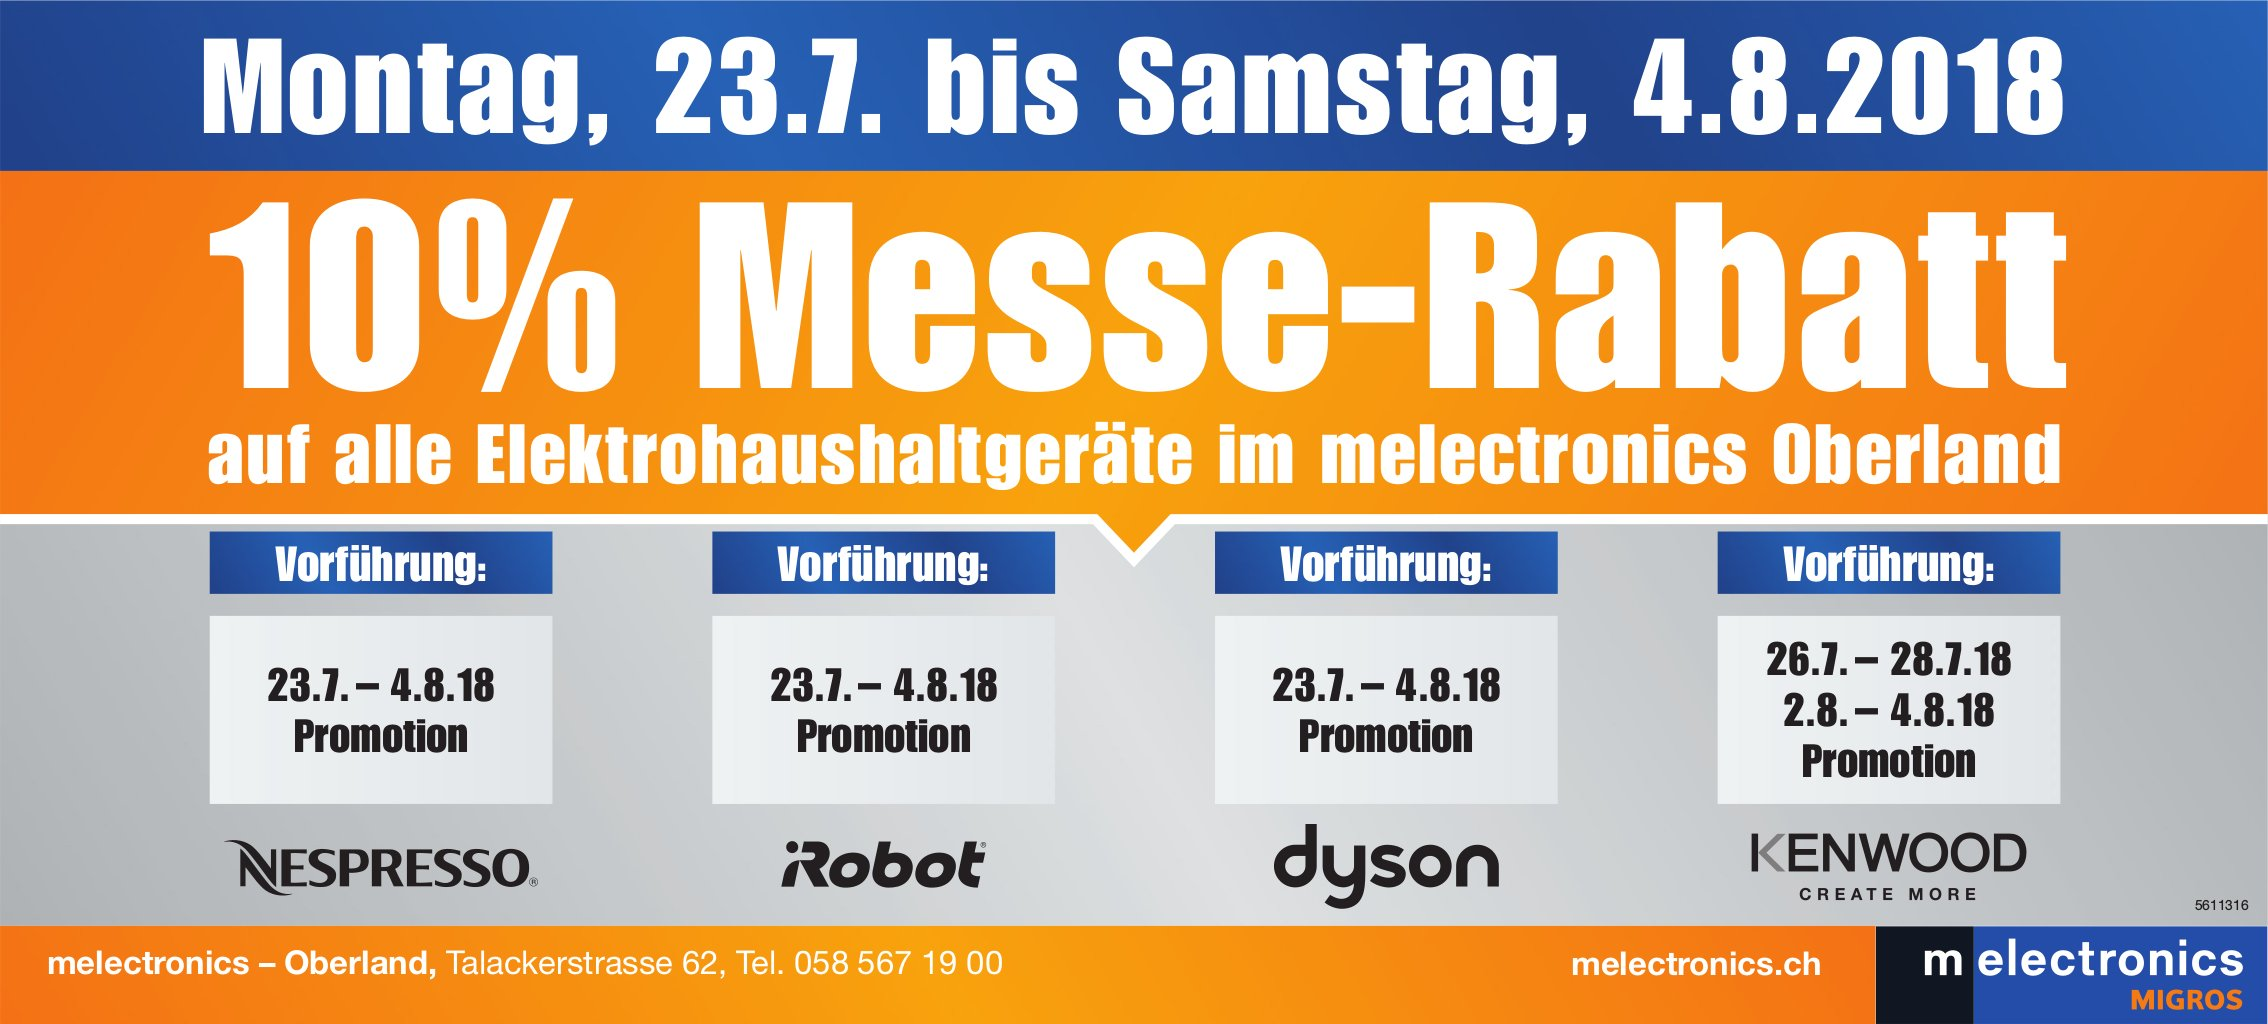 Melectronics - 10% Messe-Rabatt, 23. Juli - 4. August